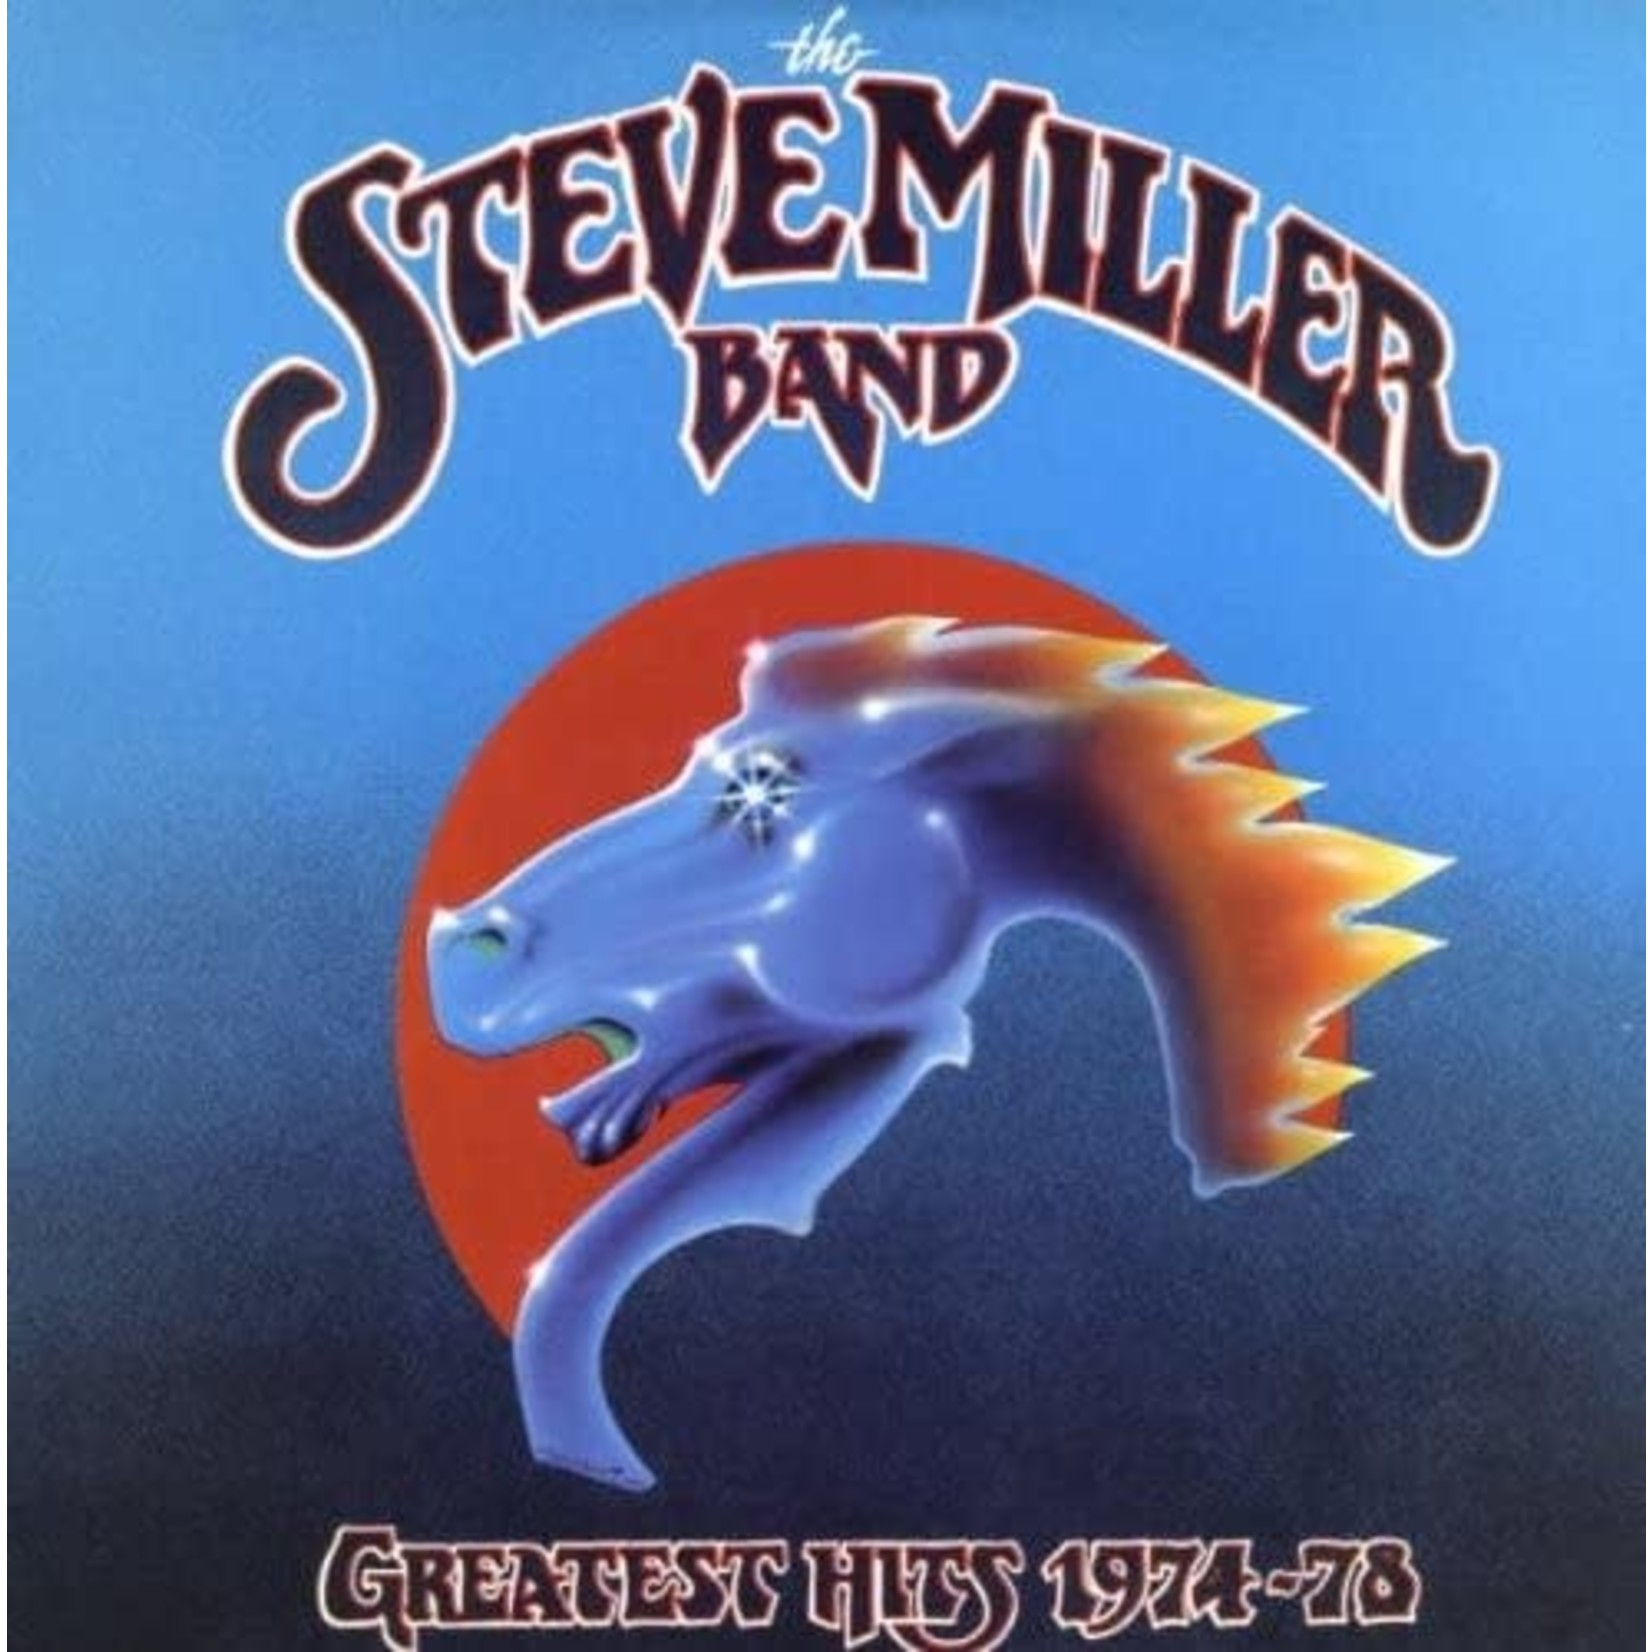 STEVE MILLER BAND GREATEST HITS 1974-78 LIMITED EDITION LP